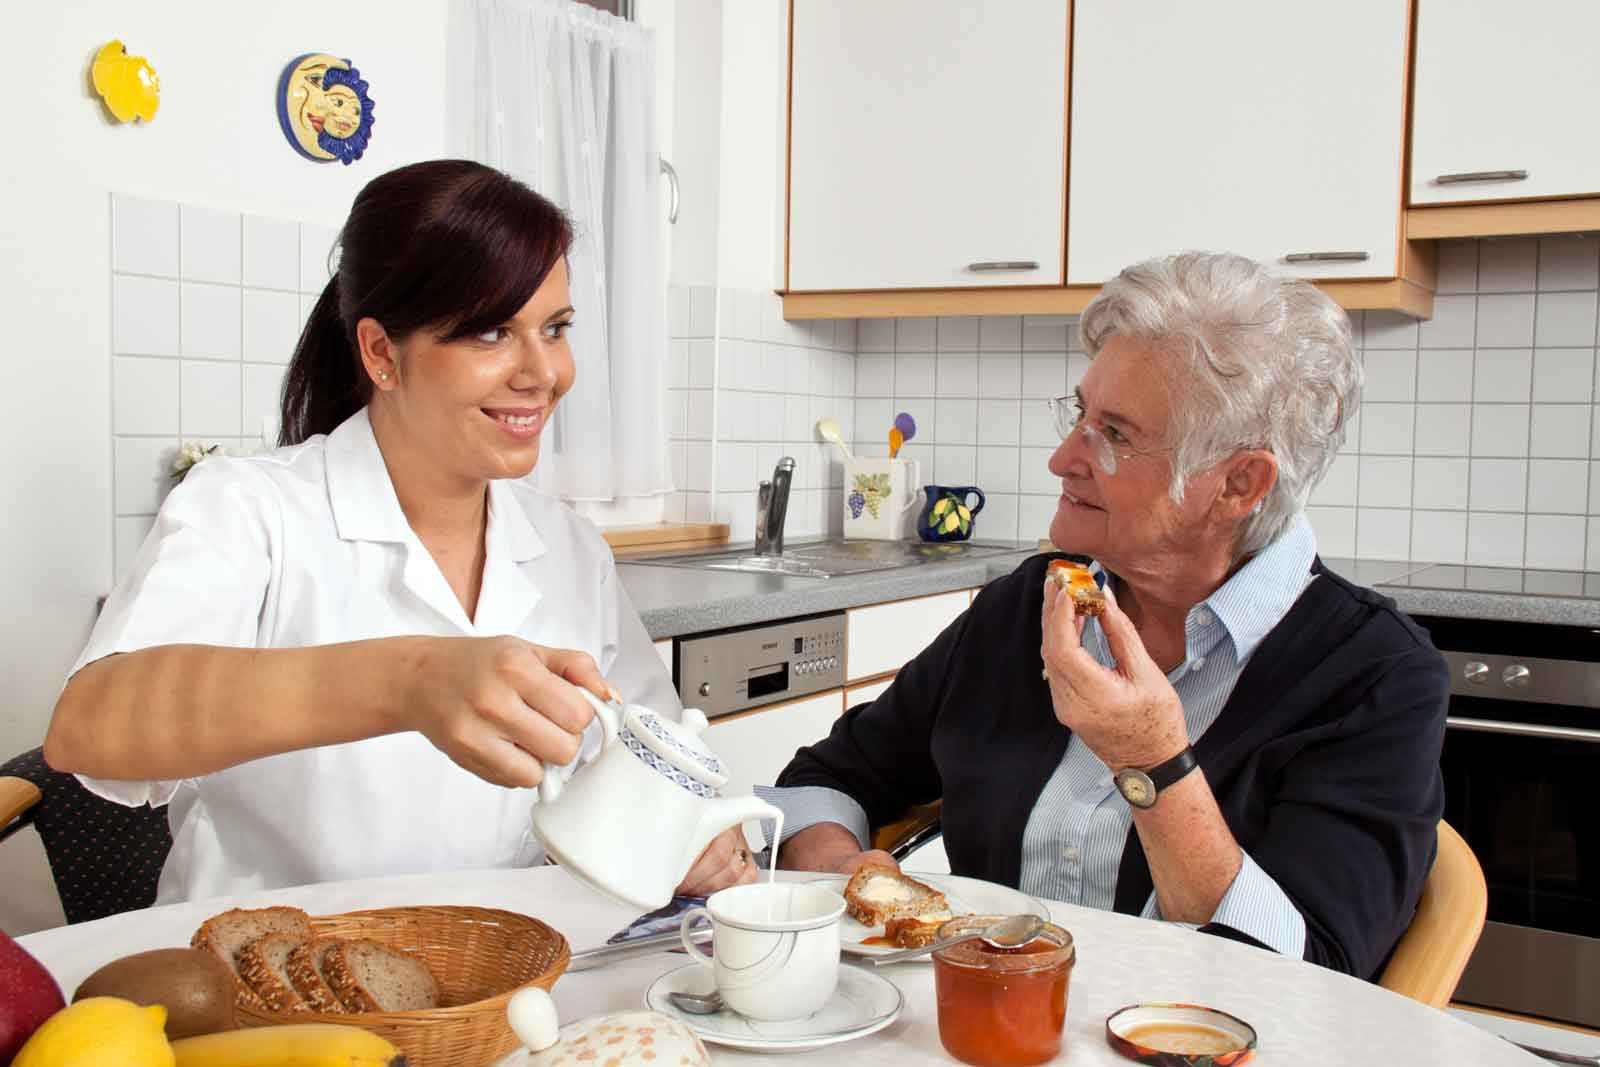 nurse-helps-elderly-woman-at-breakfast-l